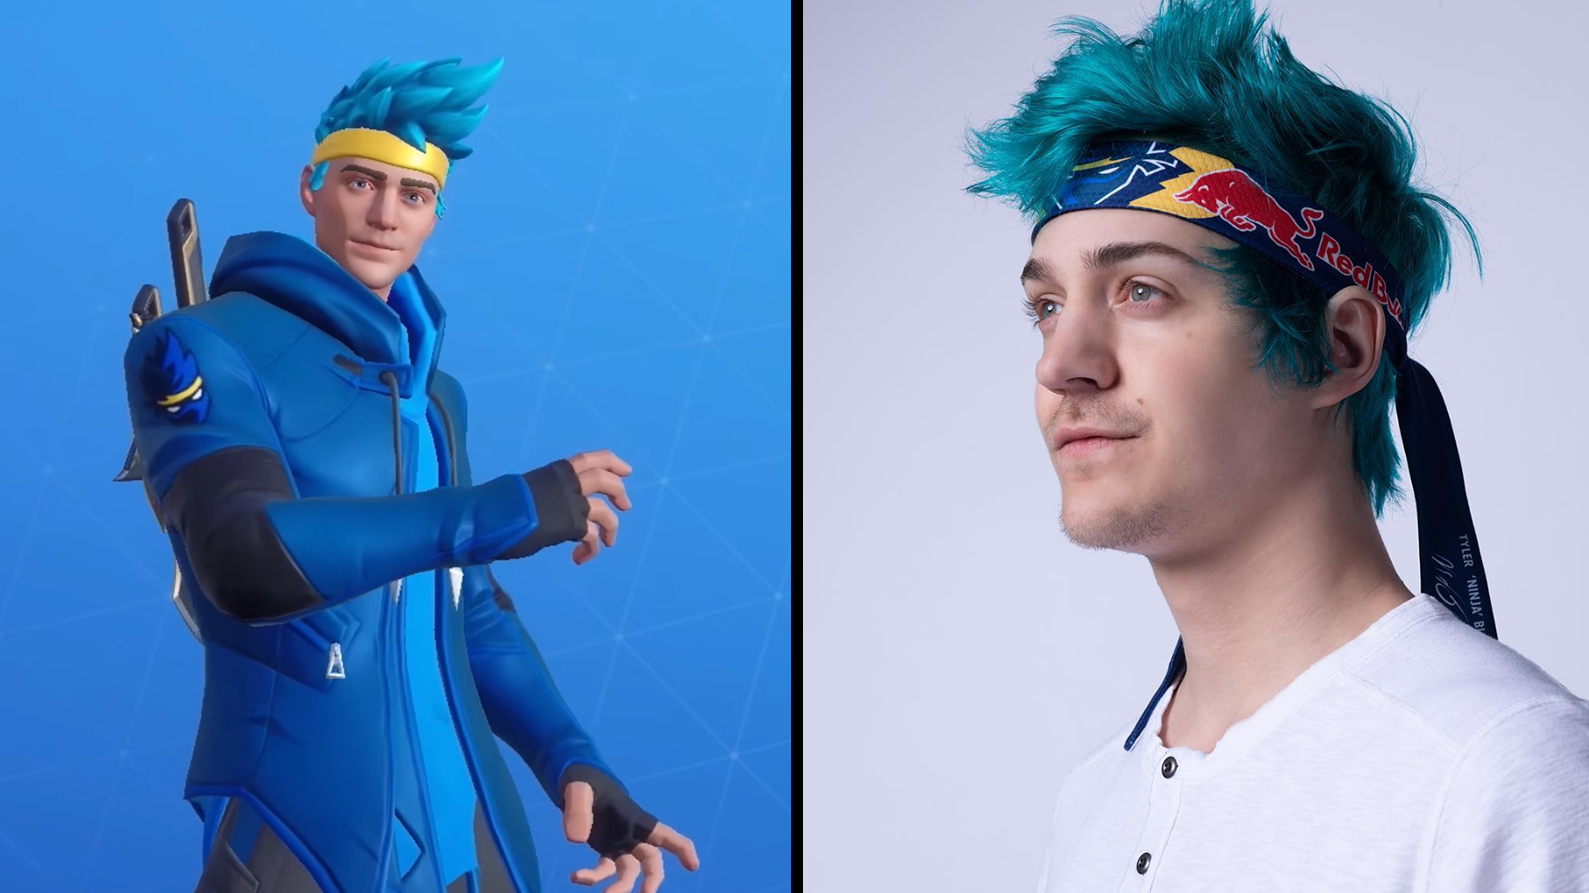 Epic Games releases custom Fortnite Ninja skin